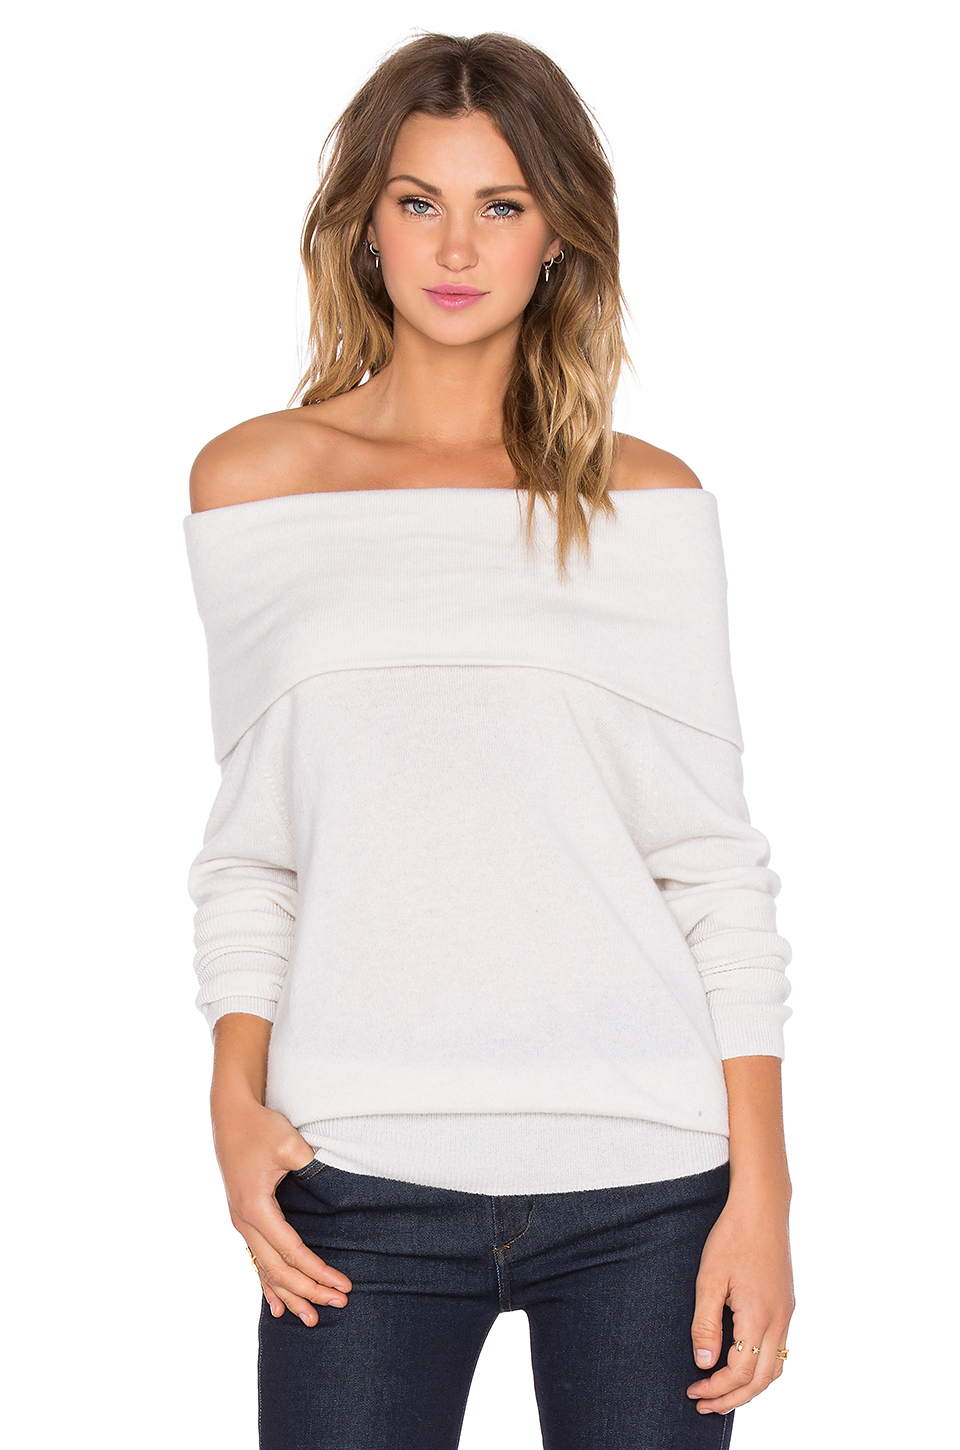 Autumn cashmere Slouchy Off Shoulder Sweater in White | Lyst